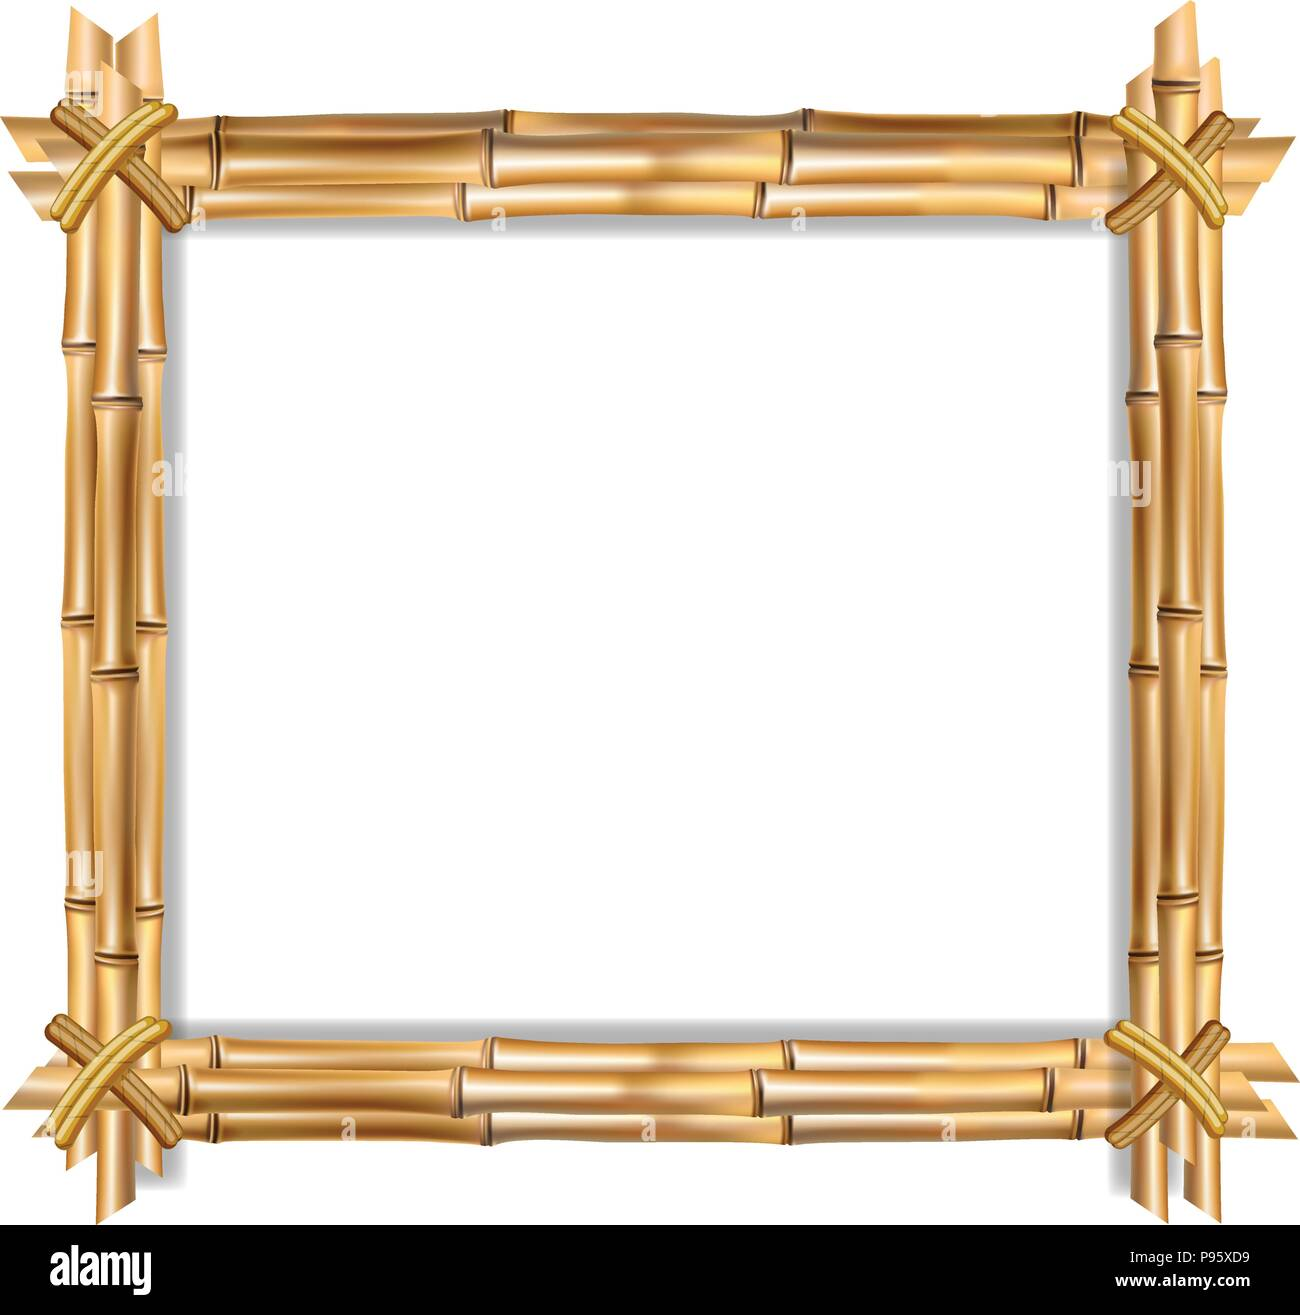 Square Brown Wooden Border Frame Made Of Realistic Bamboo Sticks With Empty Copy Space For Text Or Image Inside Vector Clip Art Banner Poster